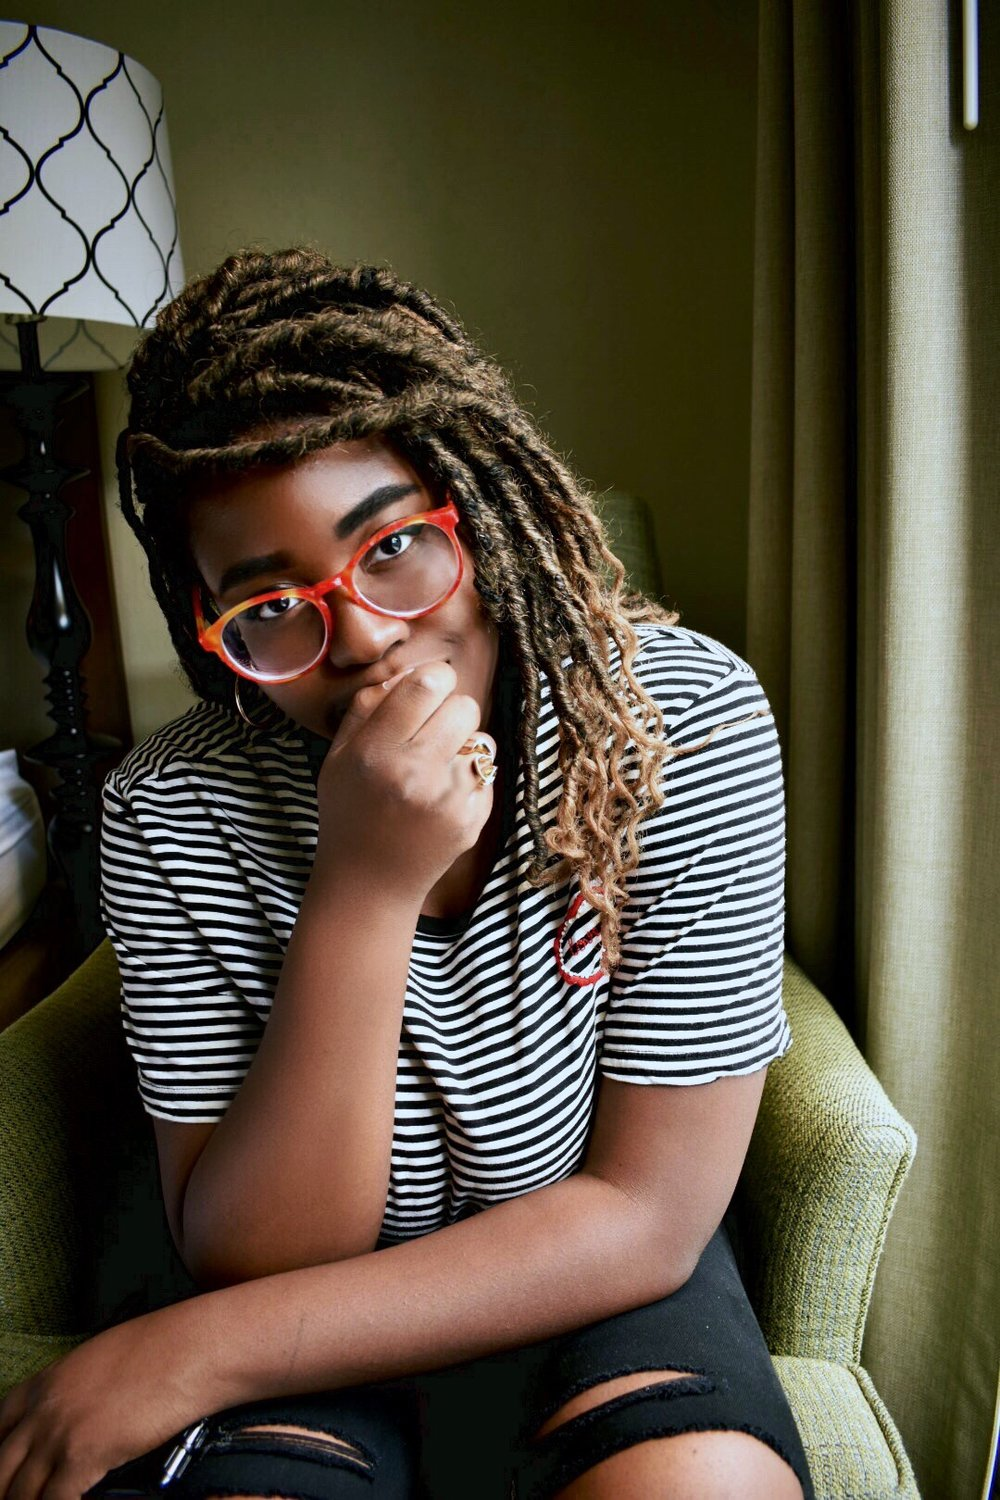 Photographed by Sola Onitiri - Glasses By Firmoo.com